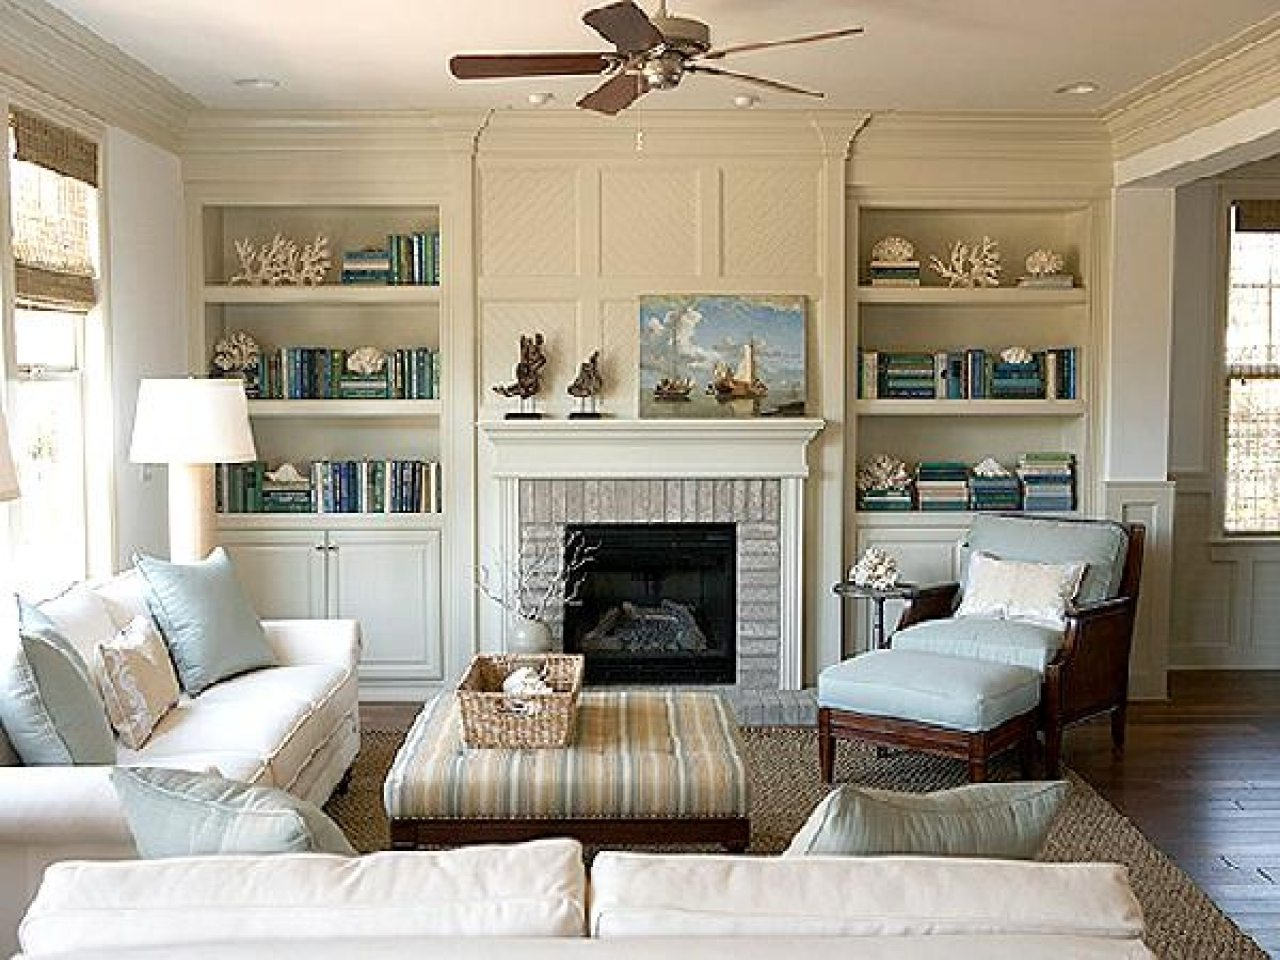 fireplace model with shelves